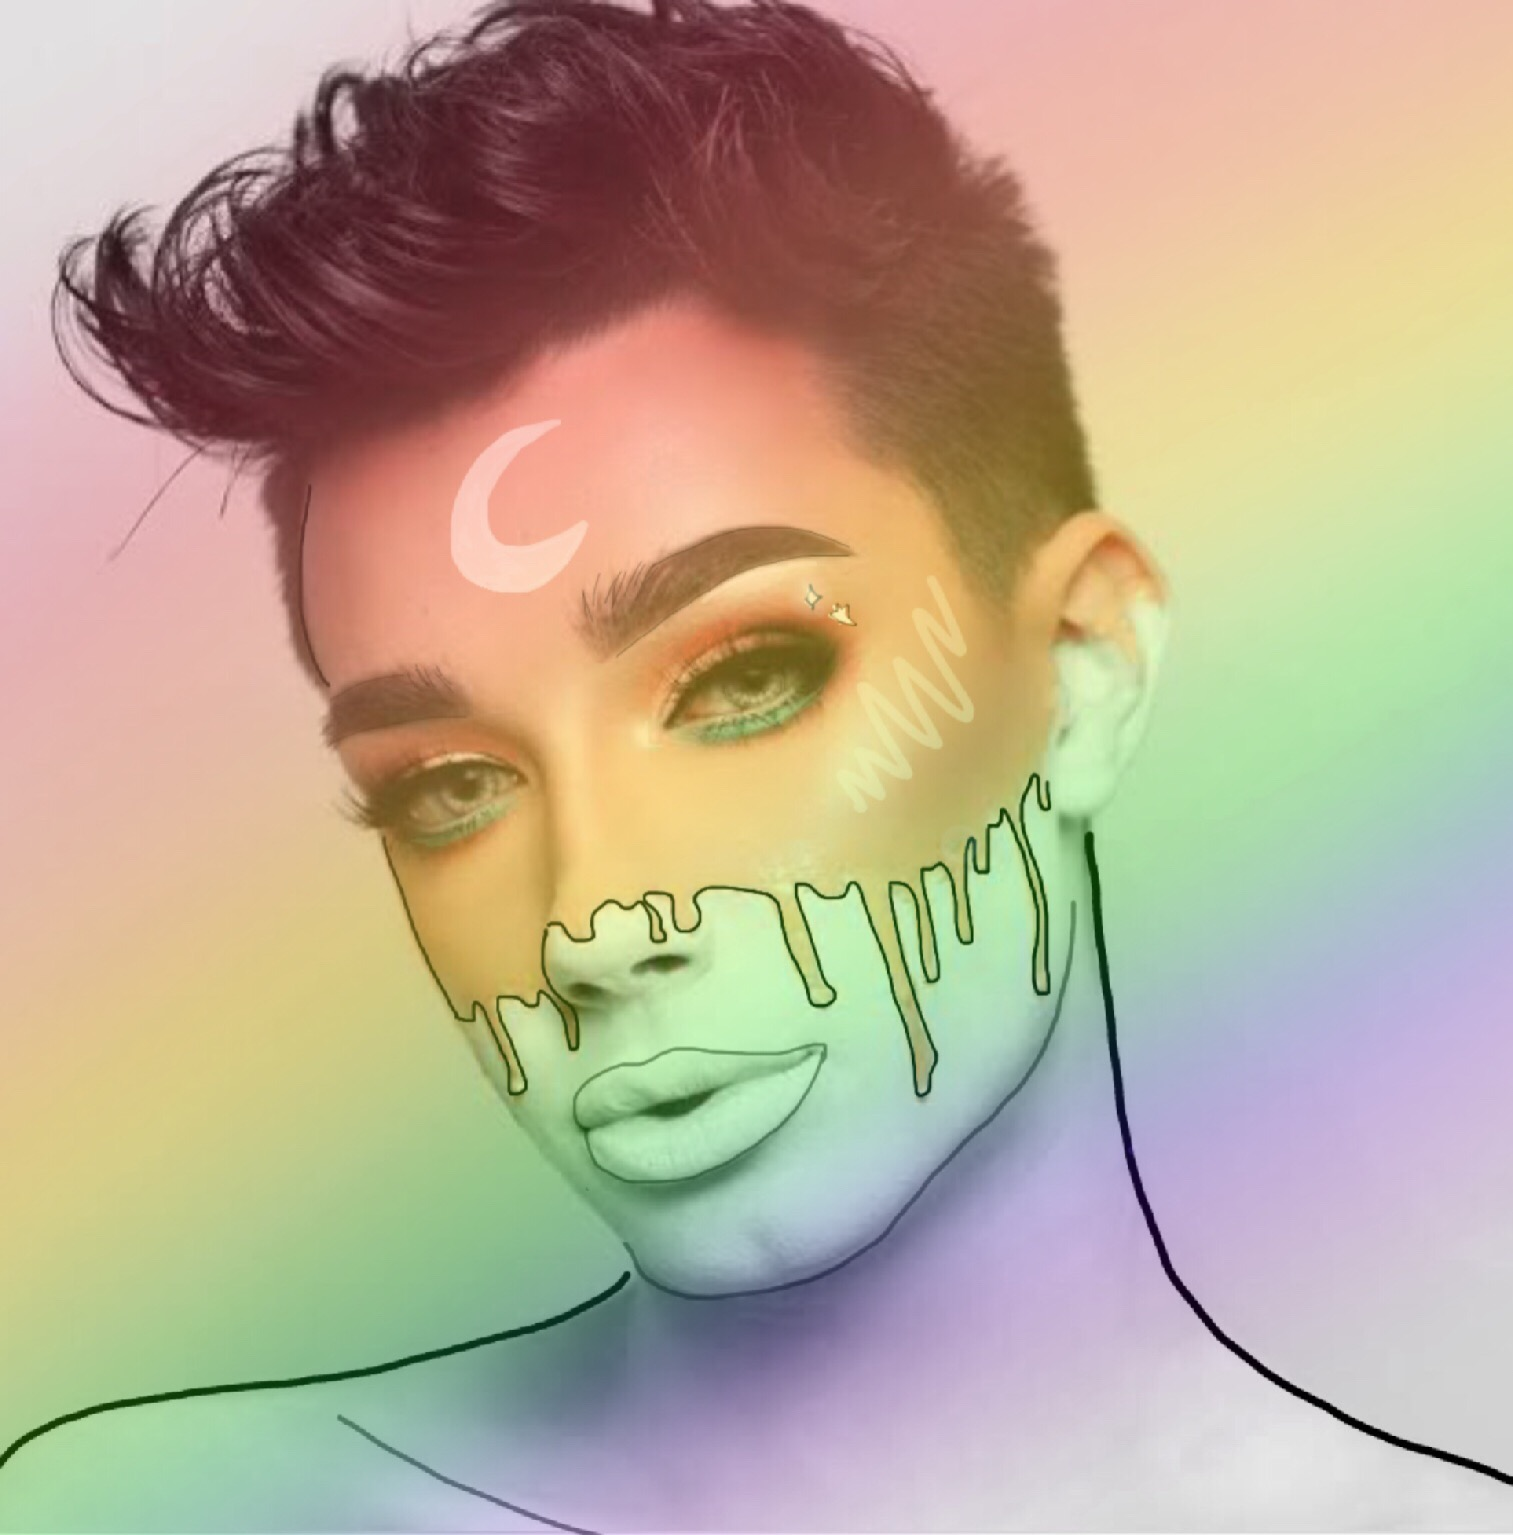 10 Pieces Of James Charles Fan Art That Will Leave You